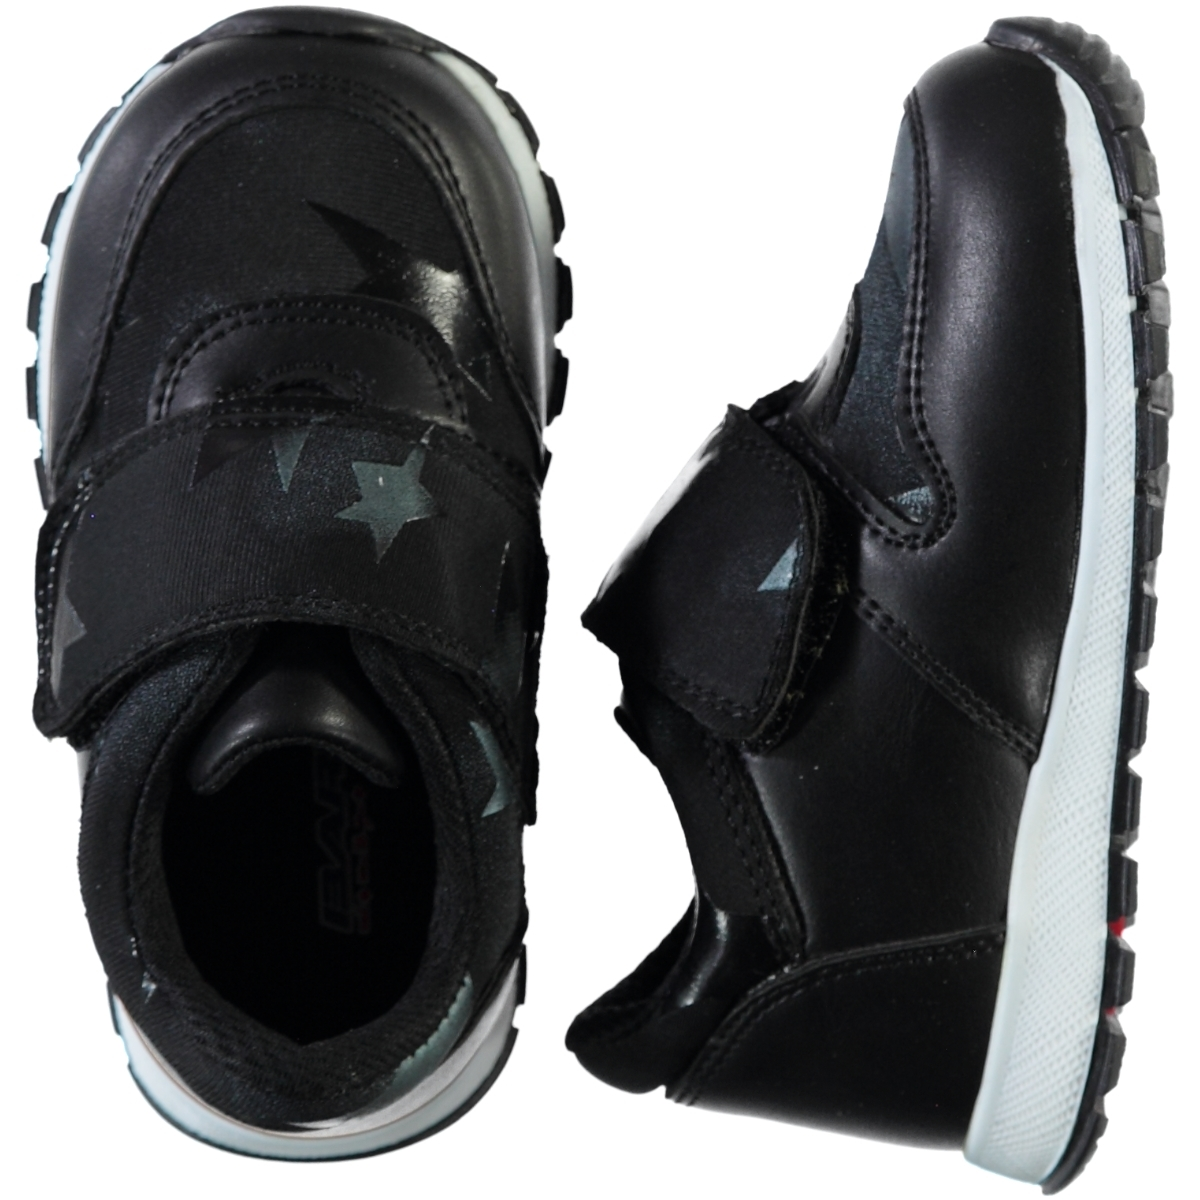 Barbone Boy Black Sneakers Numbers 21-25